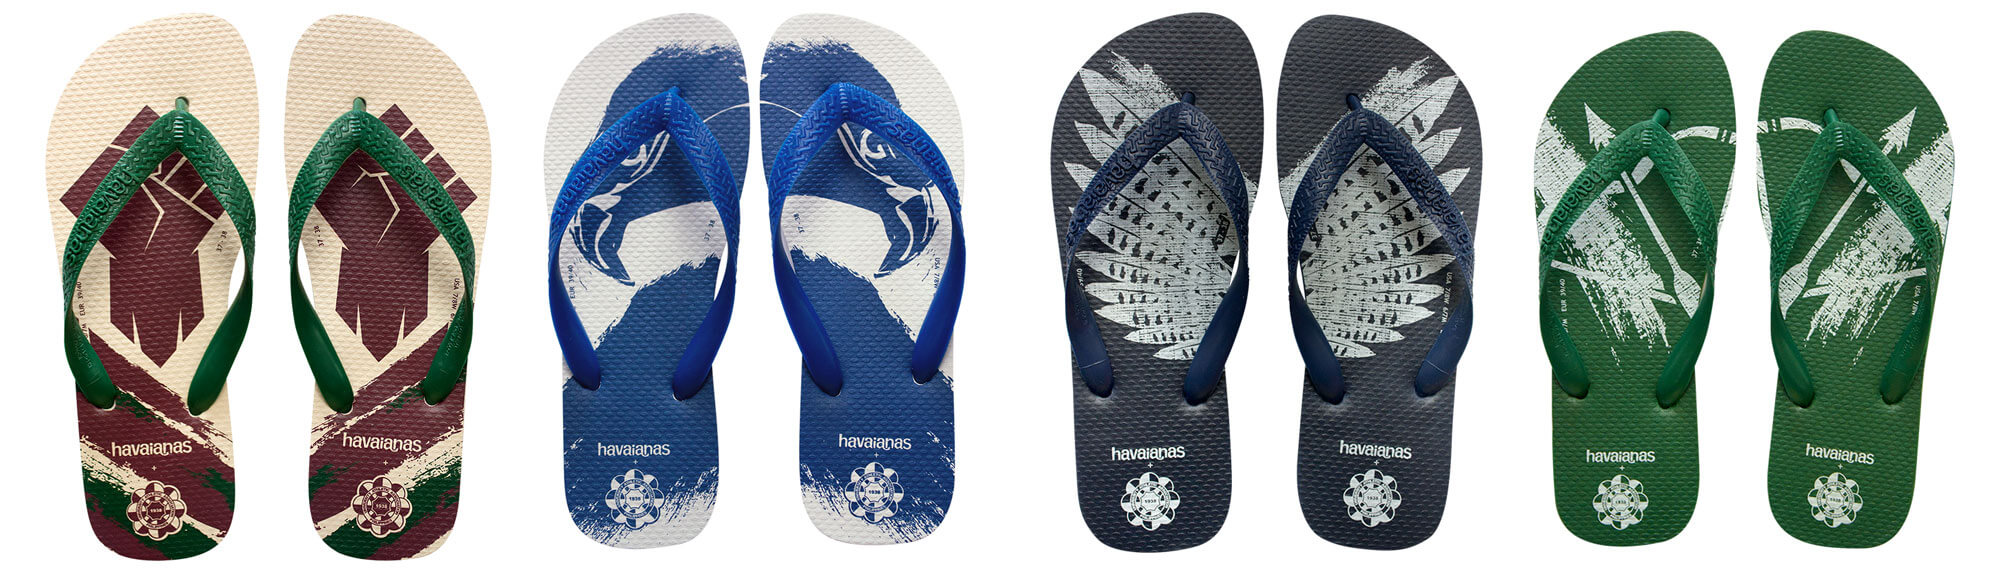 Havaianas + UAAP 2016 collection